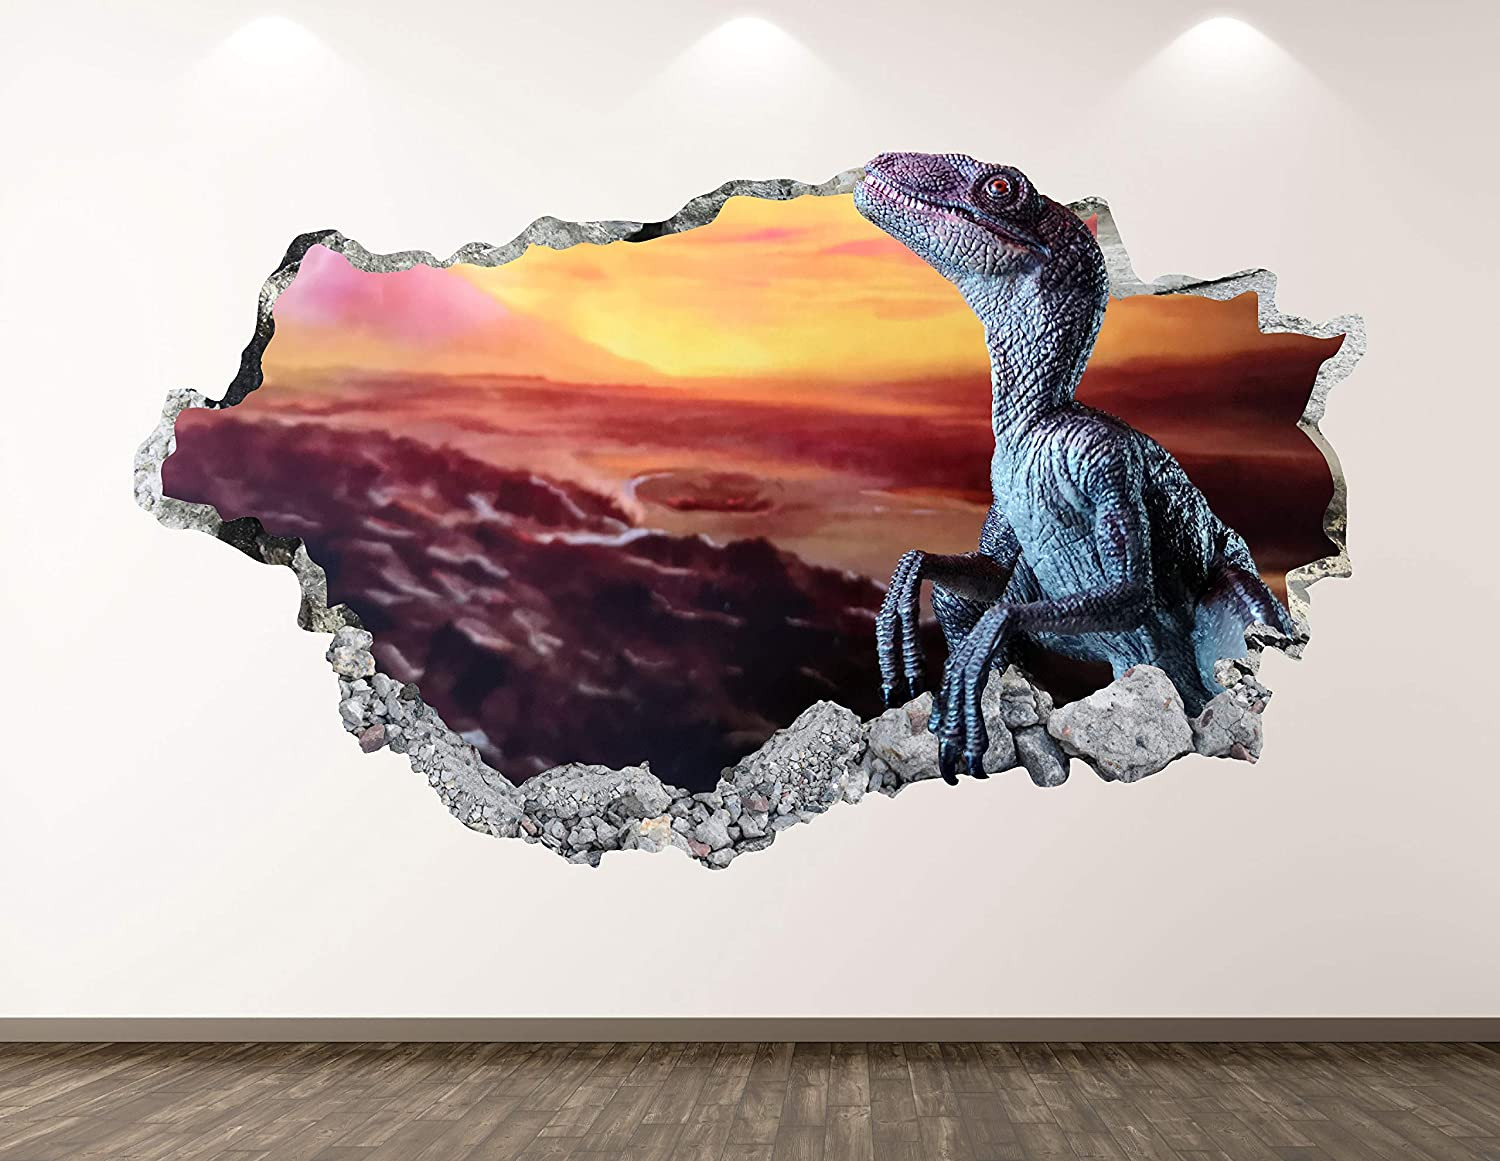 West Mountain Dinosaur Wall Decal Art Decor 3D Smashed Reptile Sticker Mural Kids Room Custom Gift BL64 (22